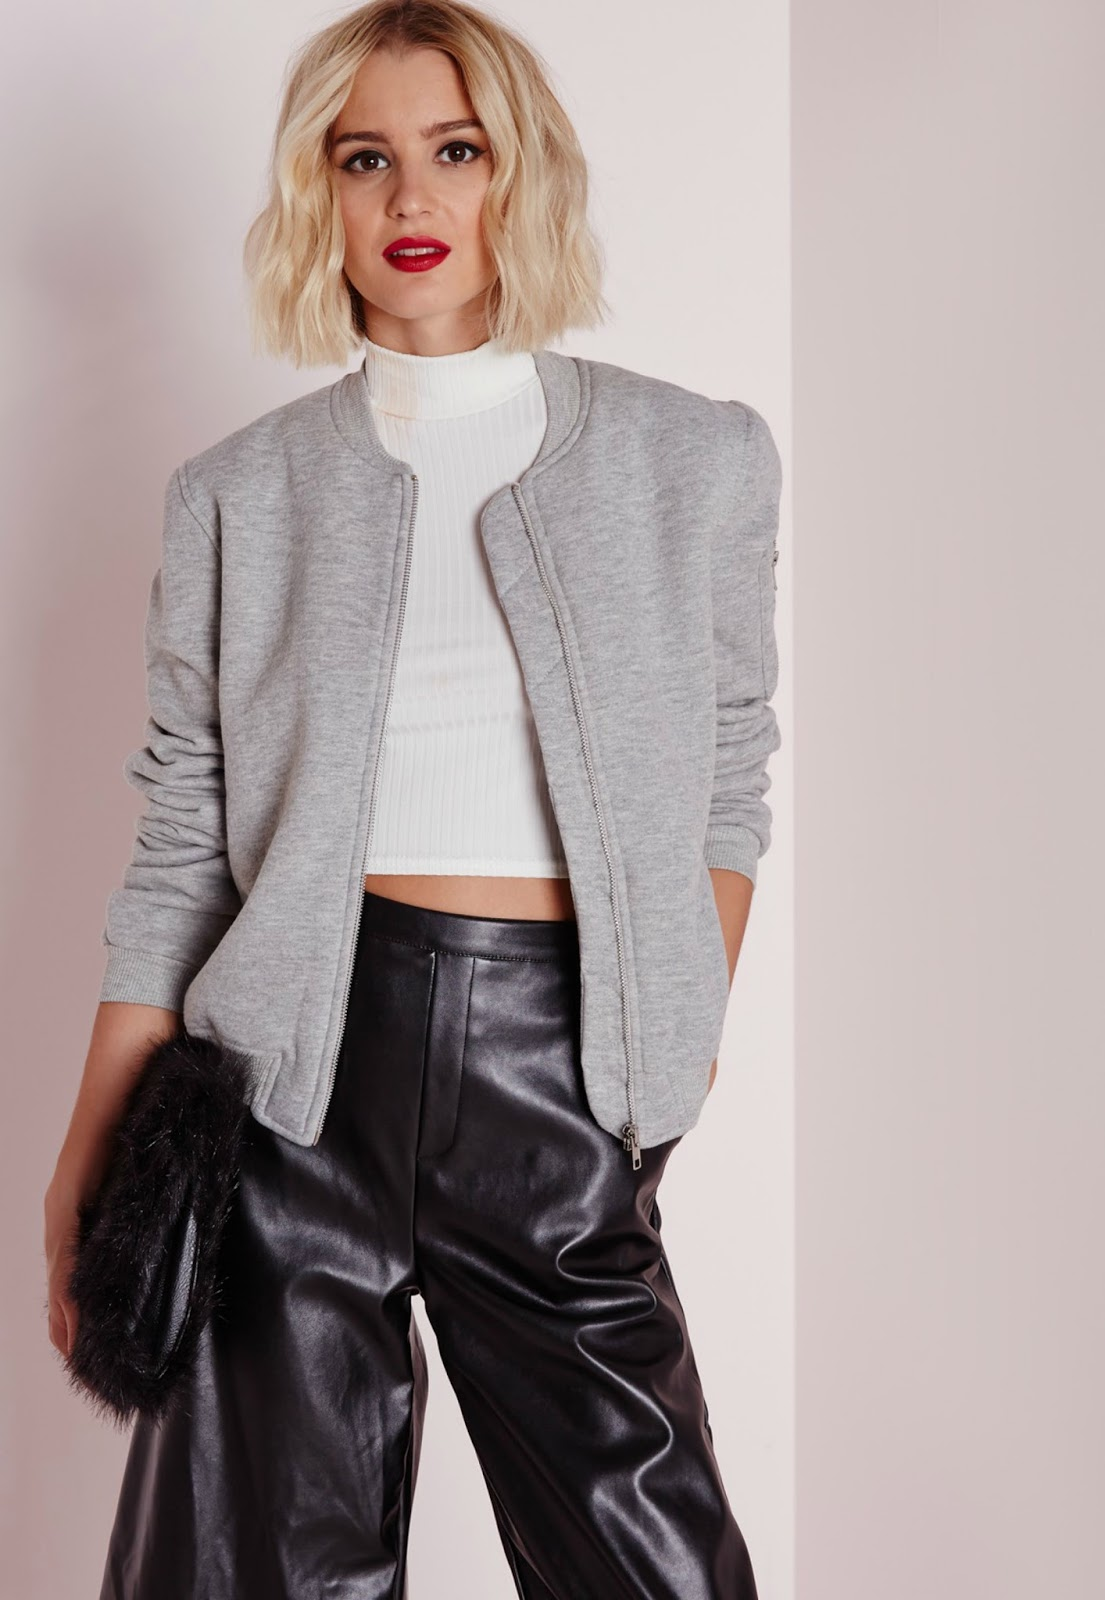 https://www.missguided.co.uk/clothing/category/coats-jackets/bomber-jackets/ponte-bomber-jacket-grey-marl